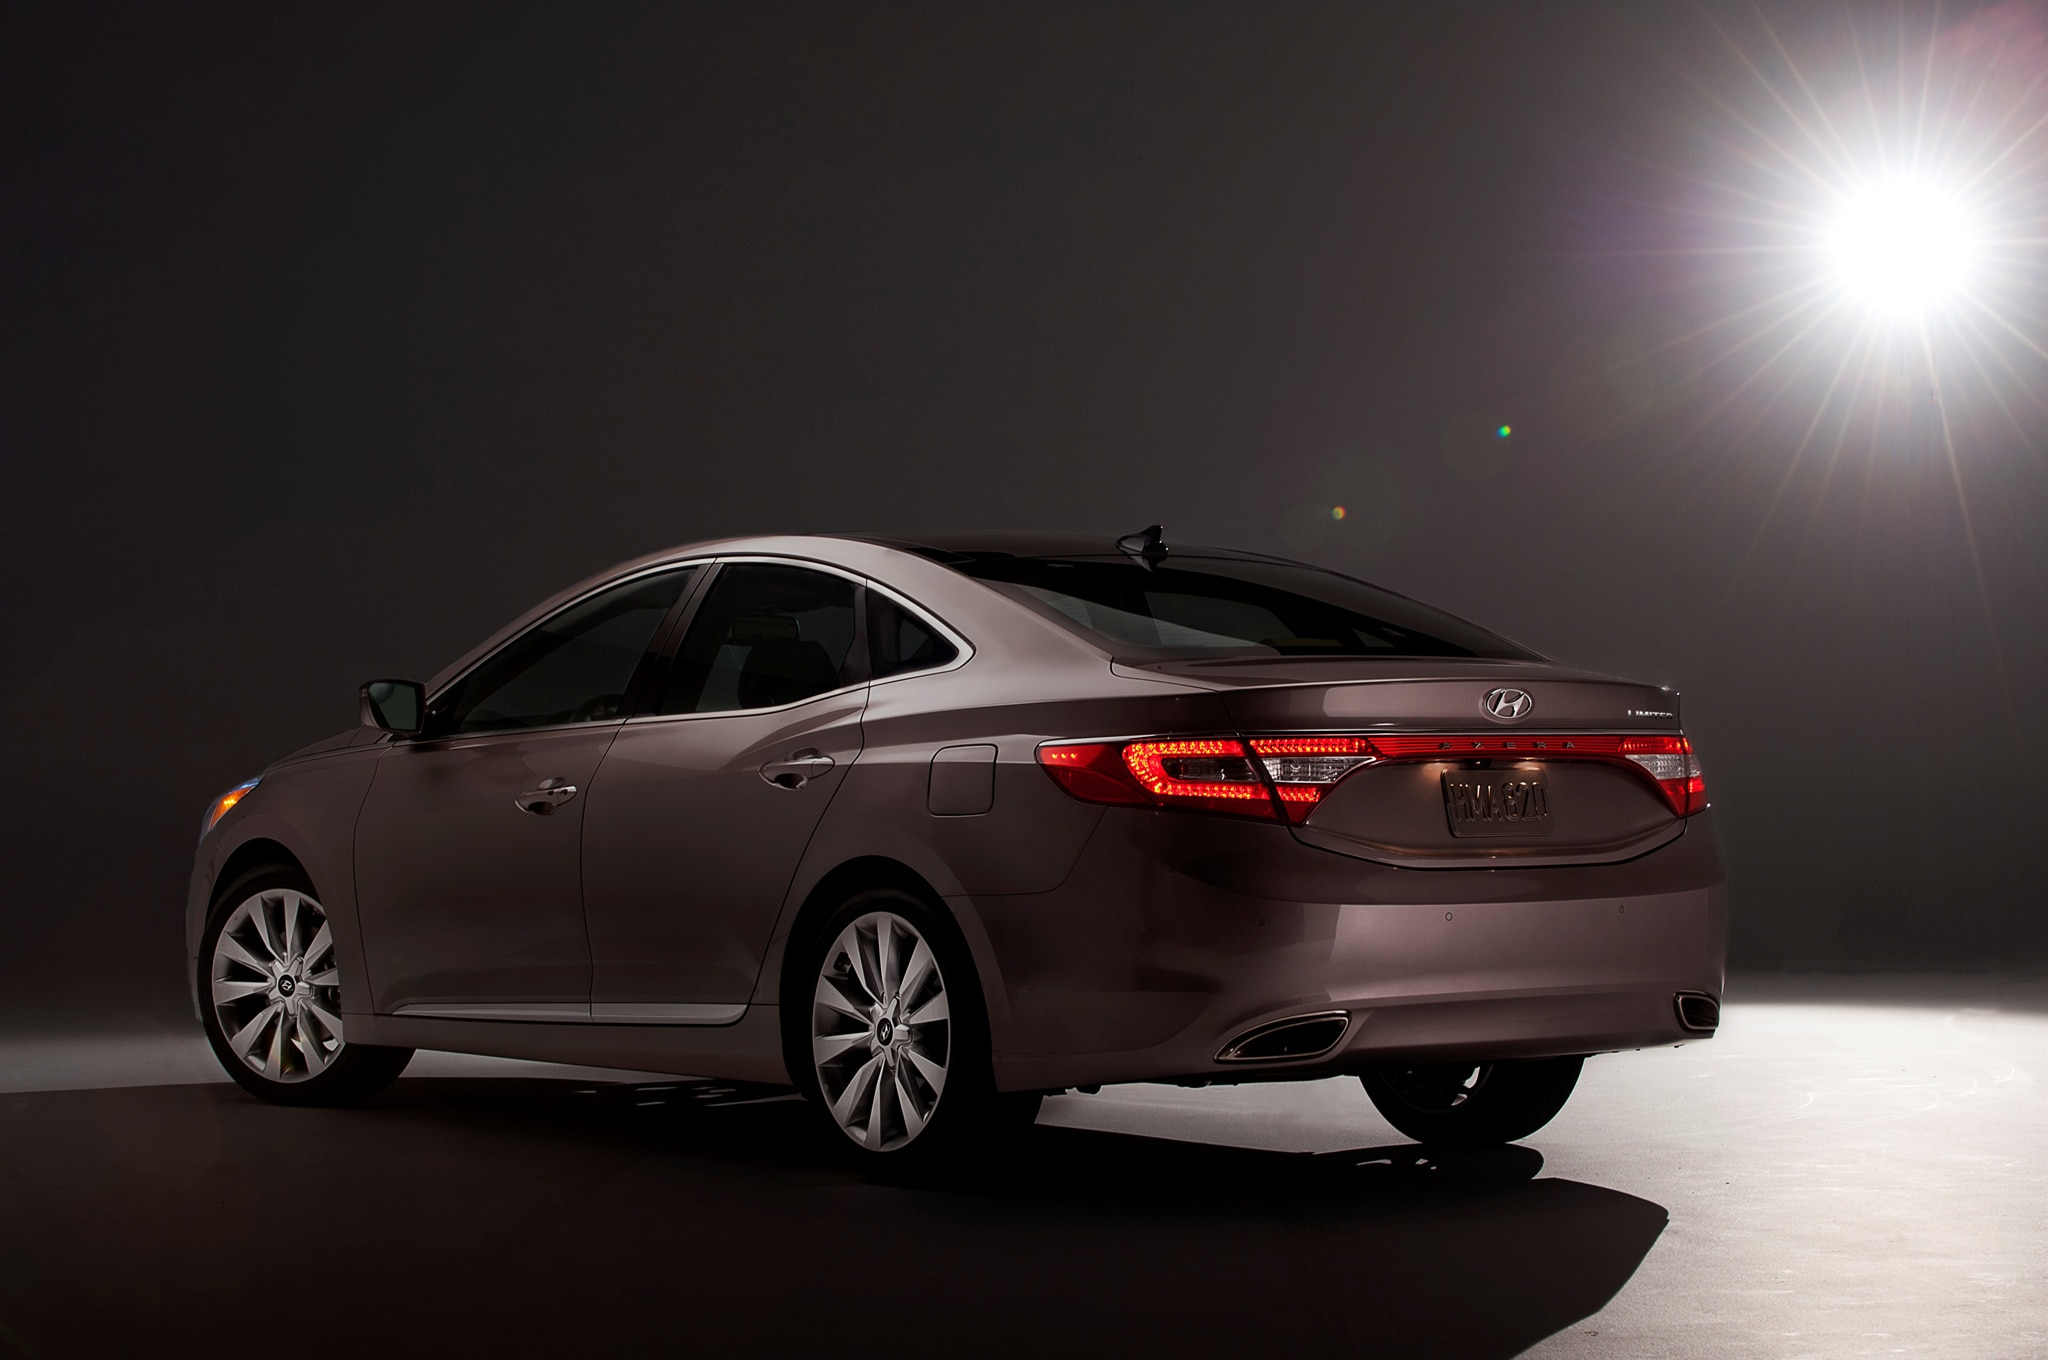 2014 hyundai azera price drops 1250 to 31 895 automobile magazine. Black Bedroom Furniture Sets. Home Design Ideas